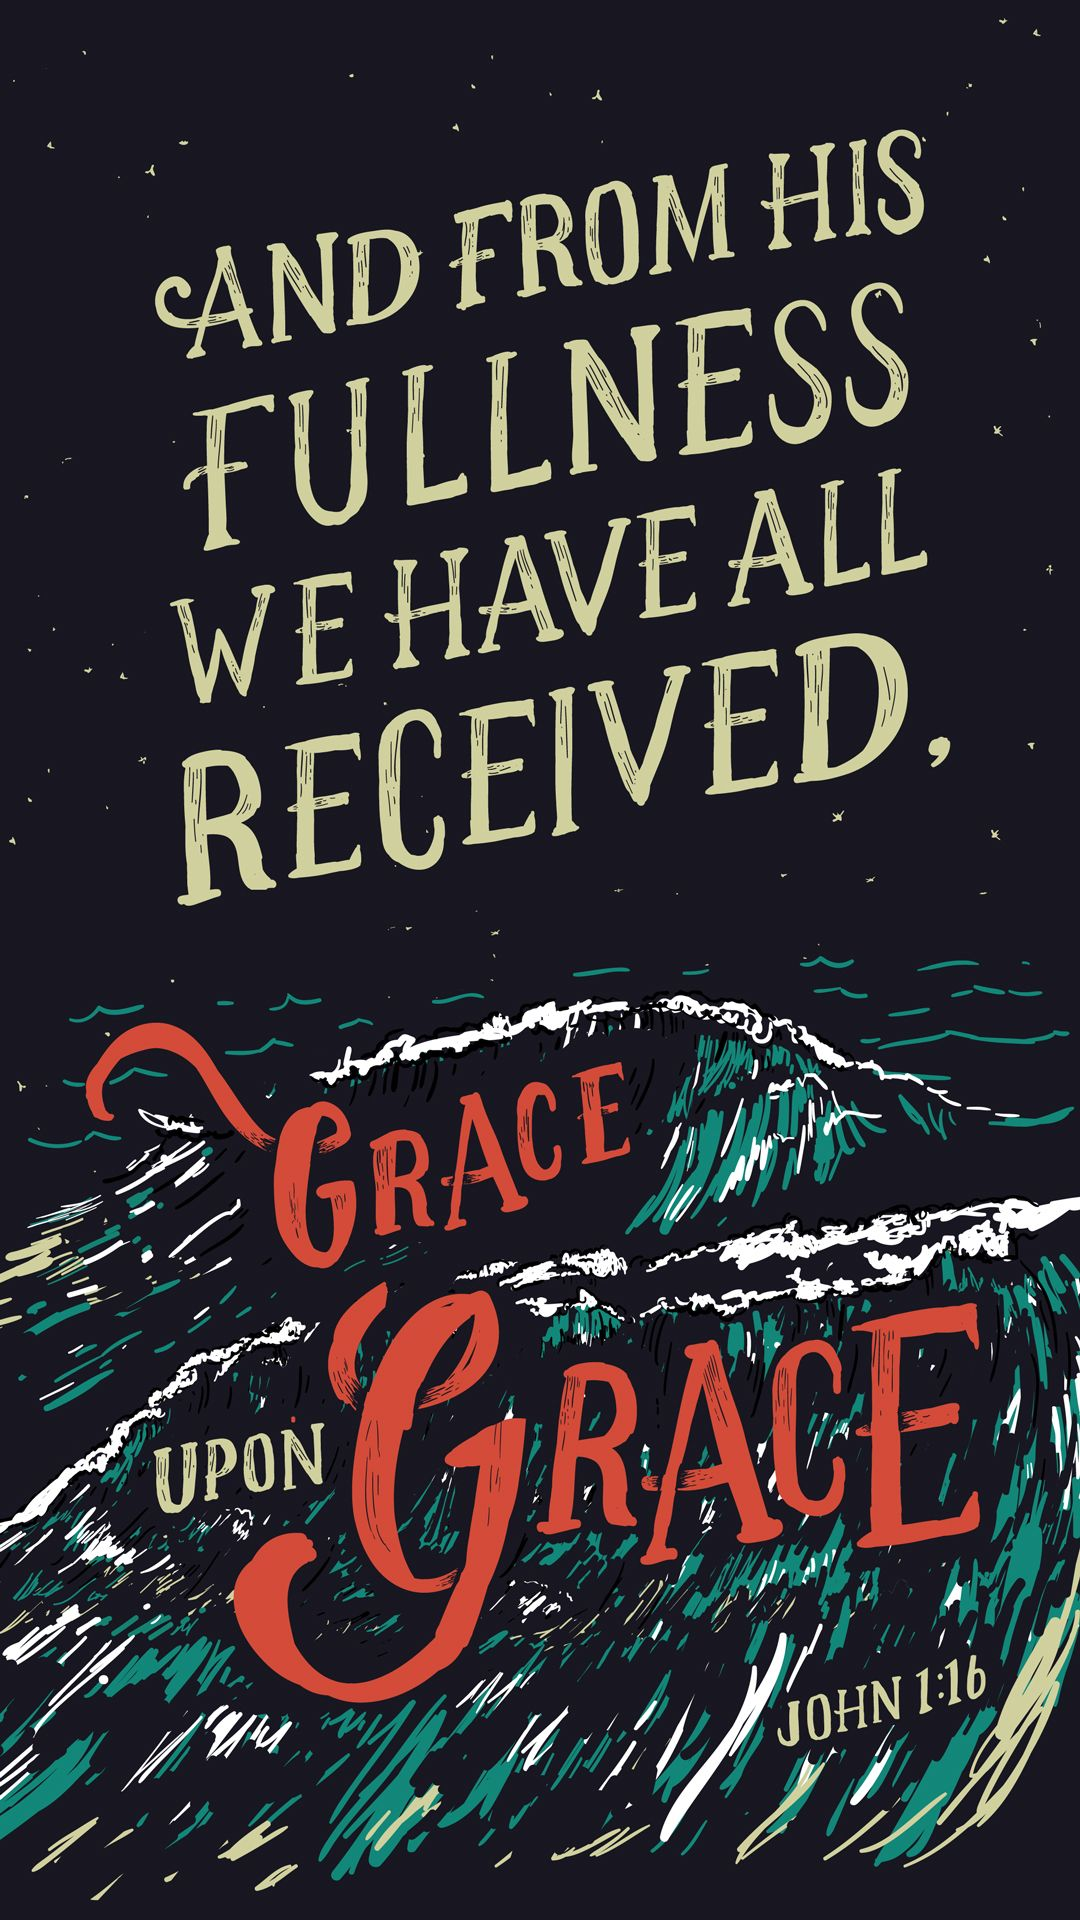 For from his fullness we have all received, grace upon ...